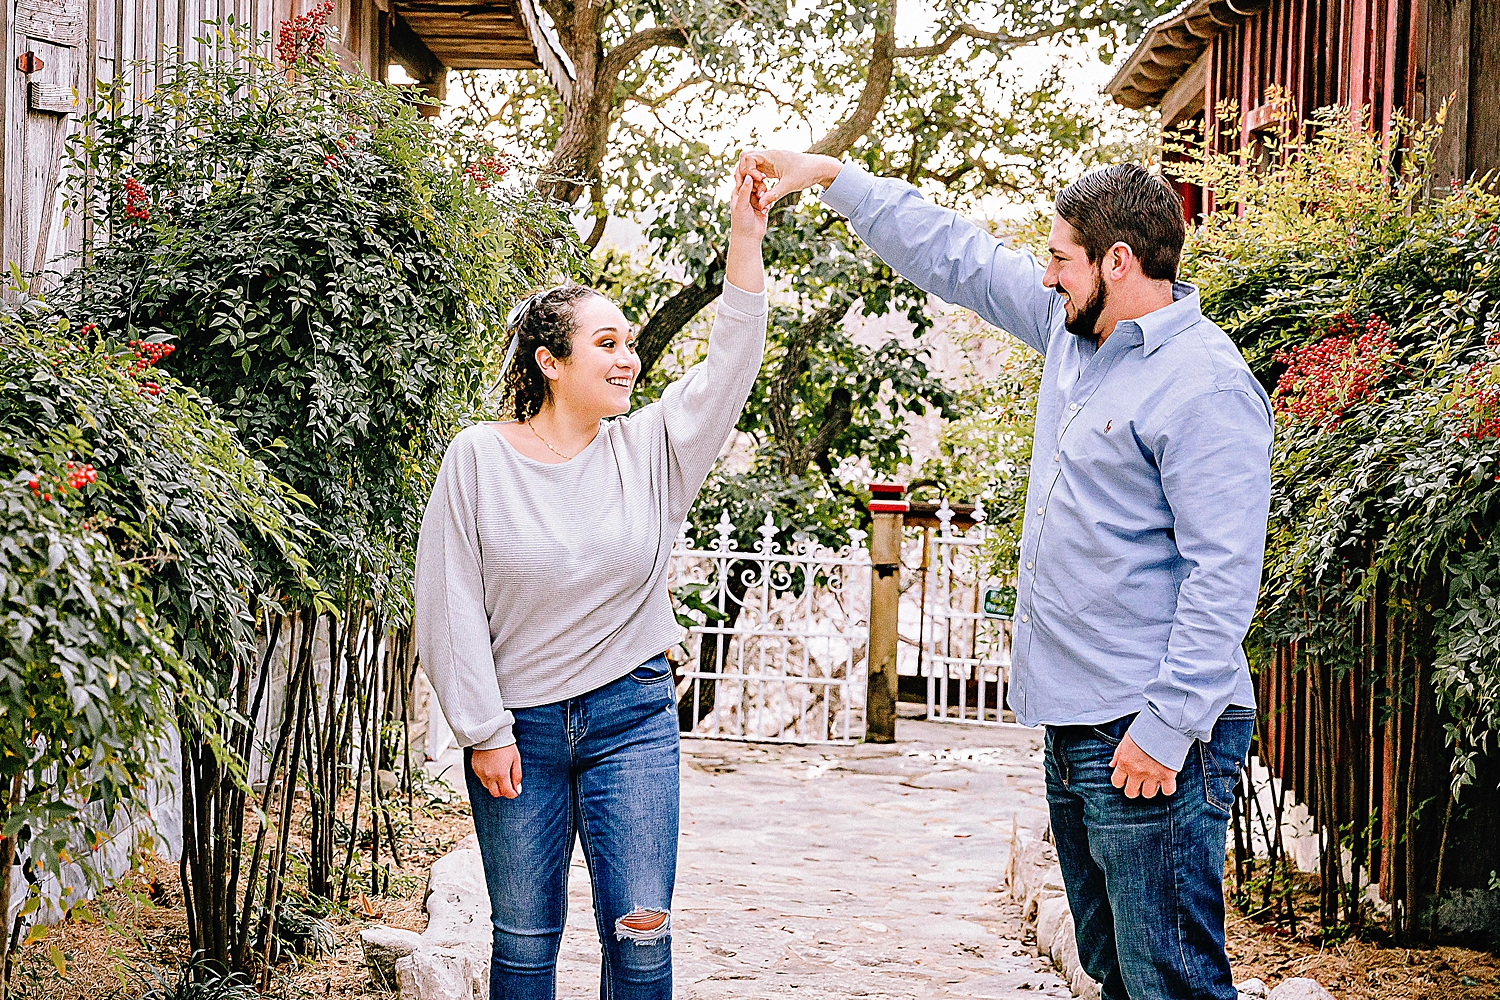 Engagement-photo-session-gruene-new-braunfels-texas-carly-barton-photography_0008.jpg